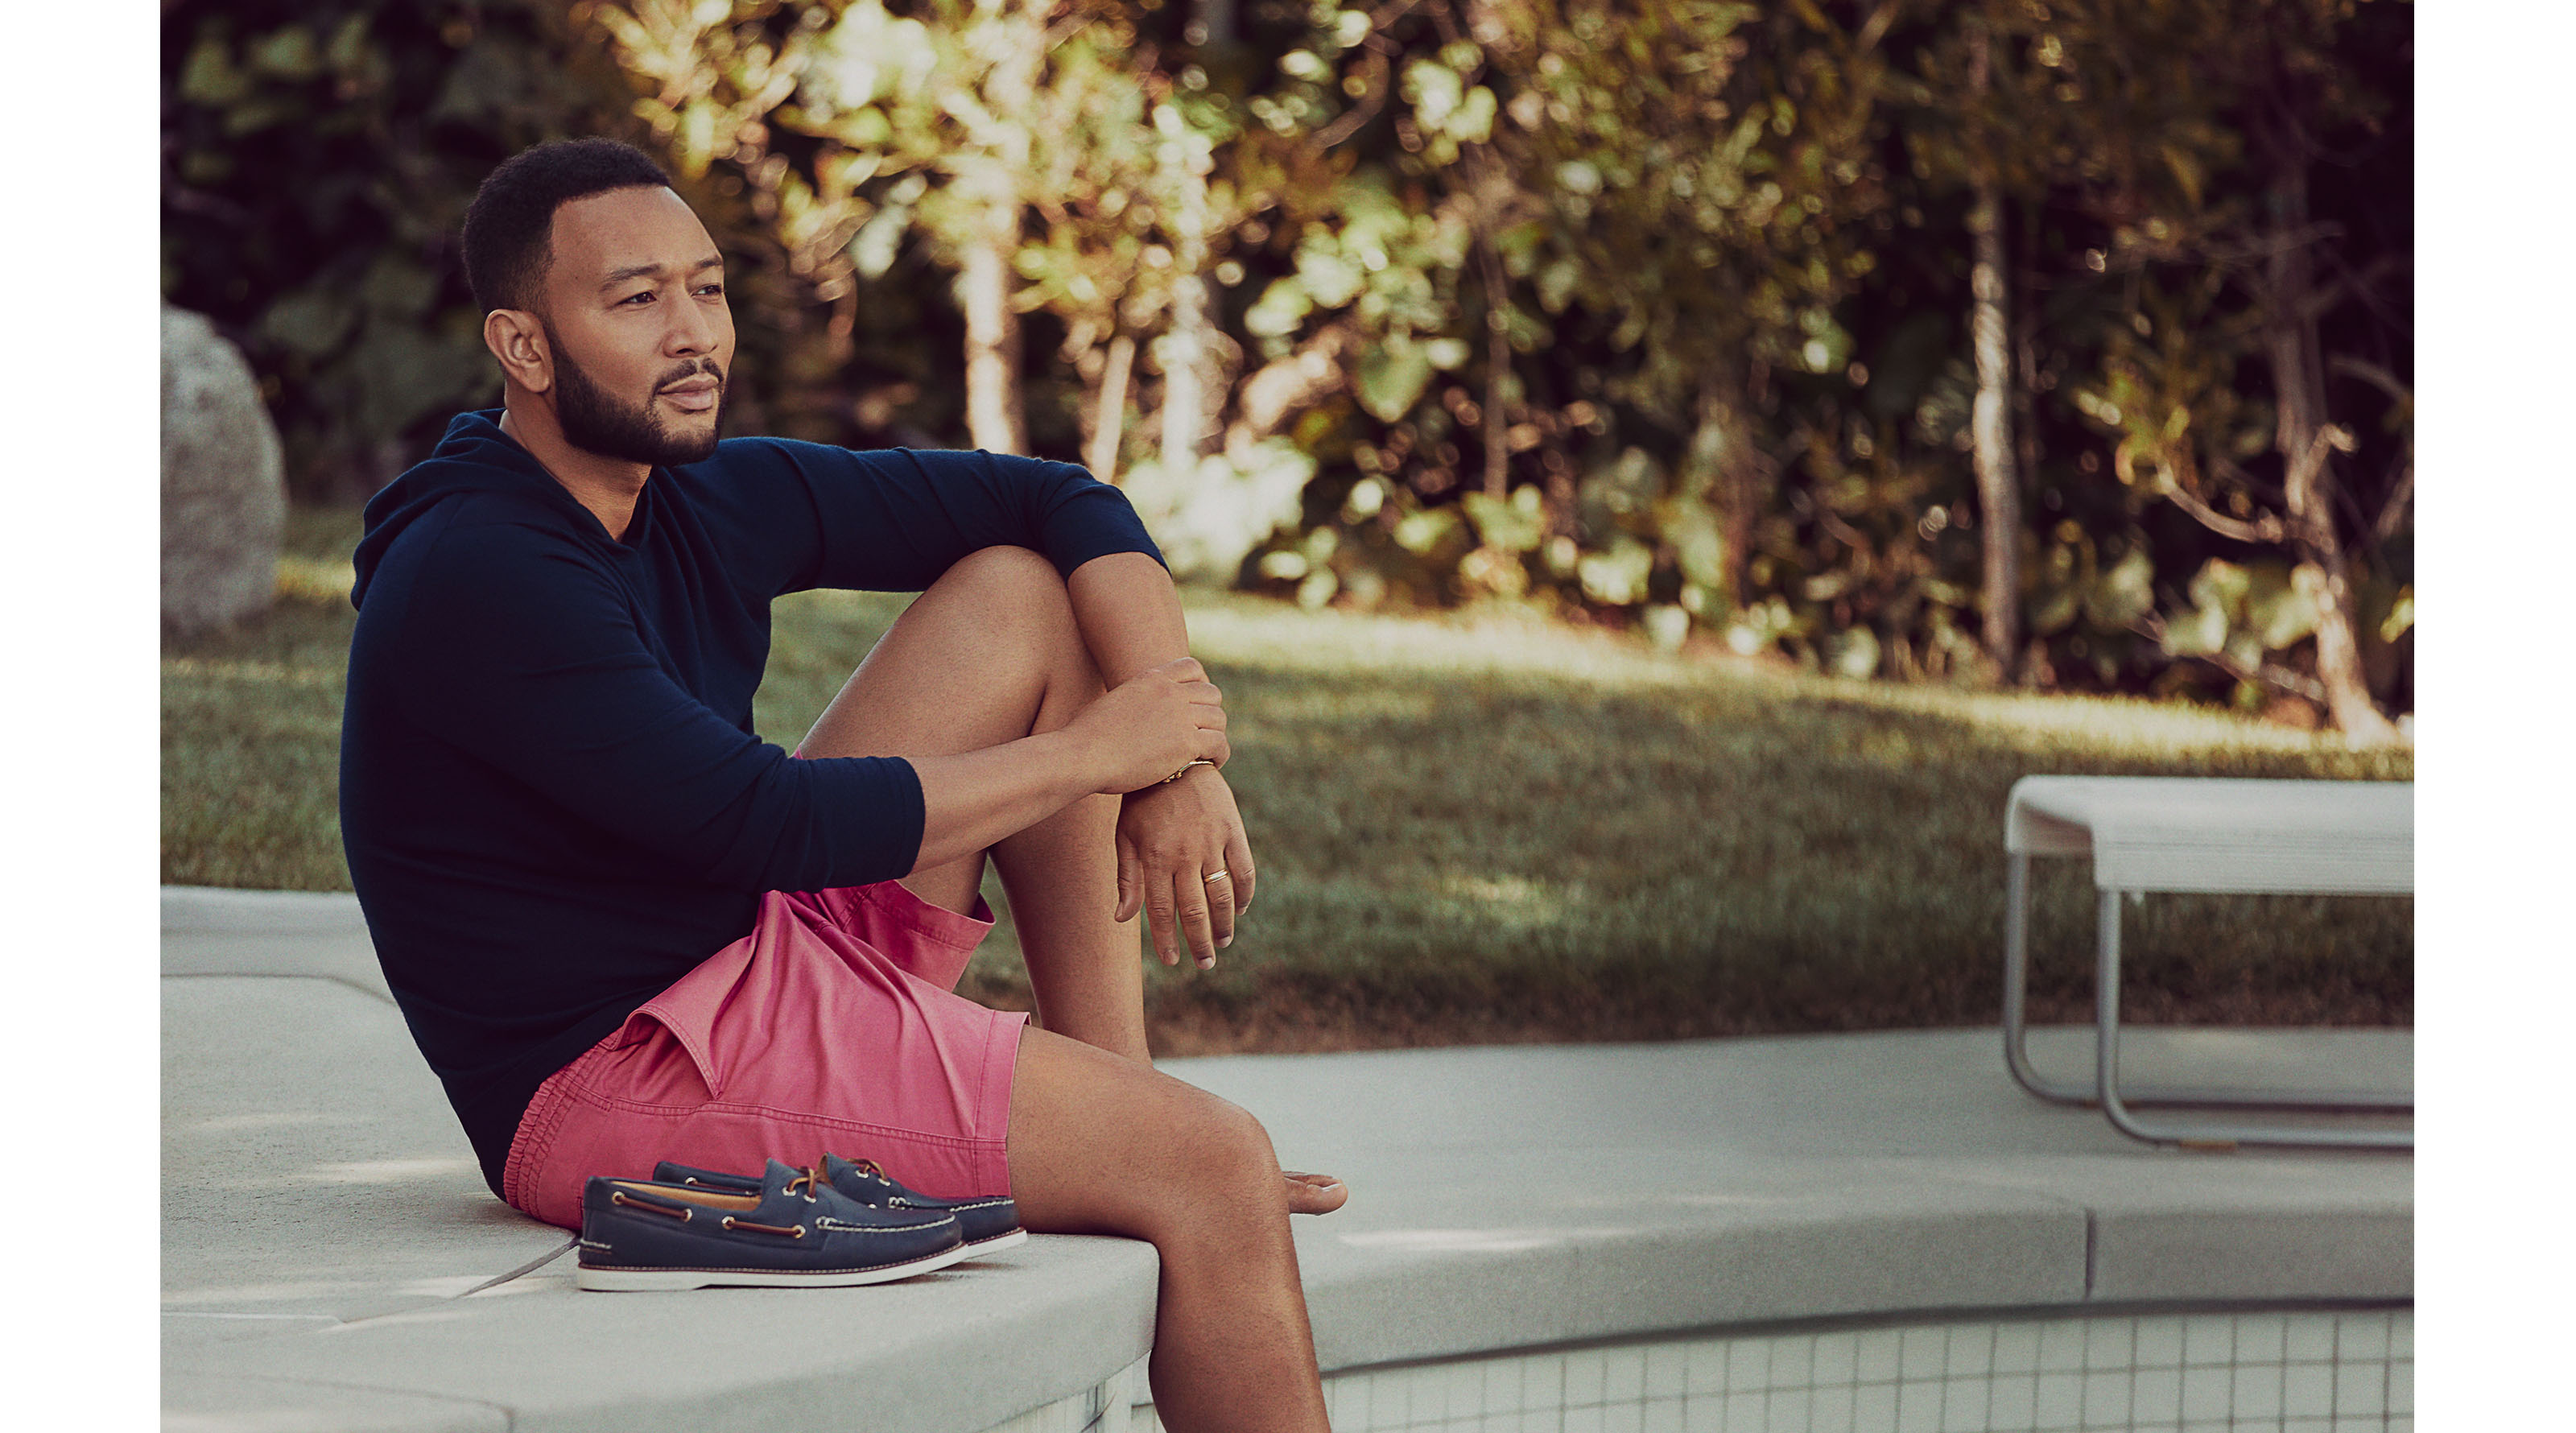 John Legend relaxing outside by his pool with the Gold Cup Authentic Original by his side.